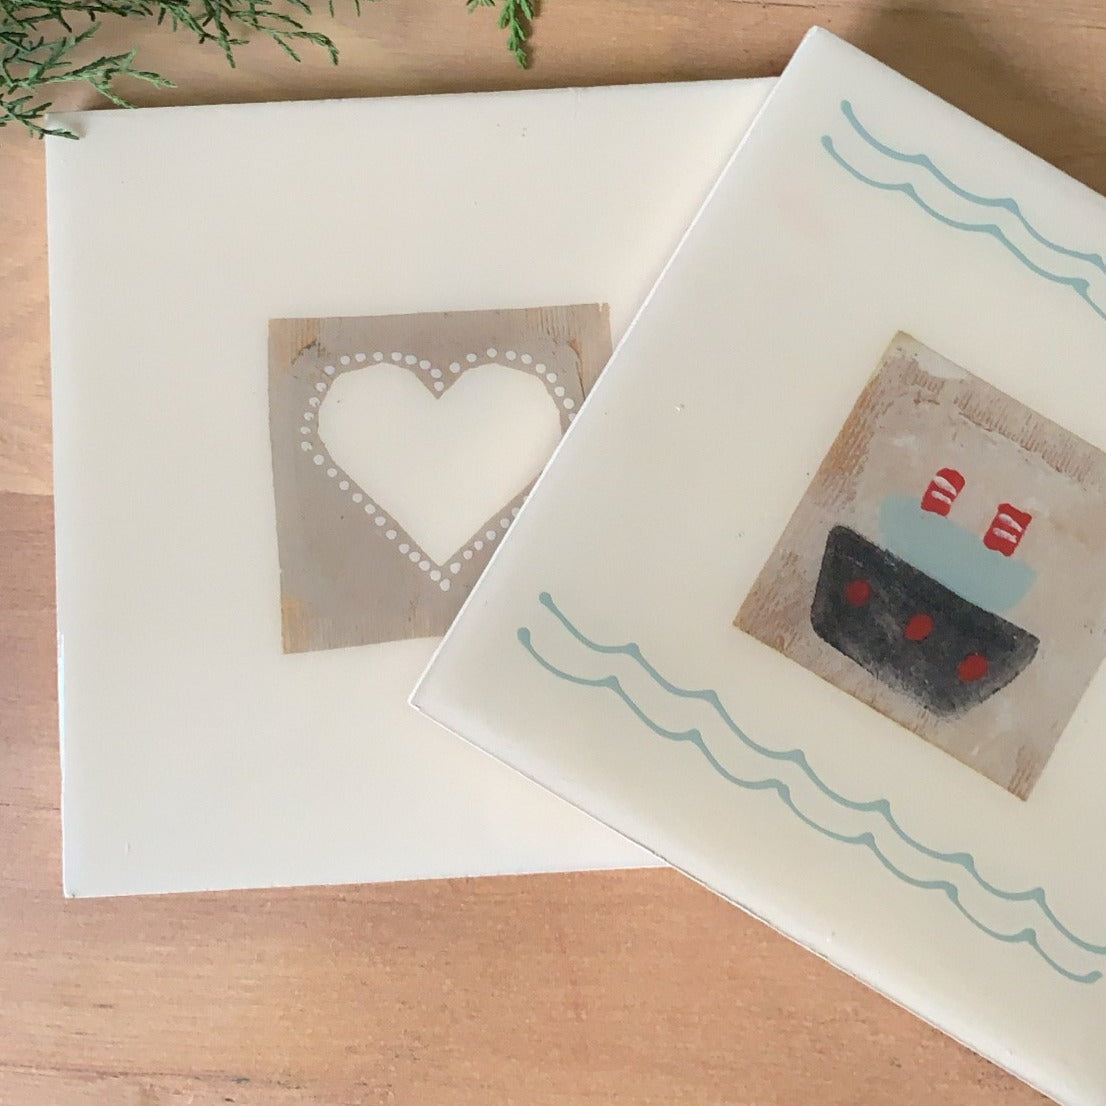 Trivets with recycled tea bags and designs. Heart and sailboat.